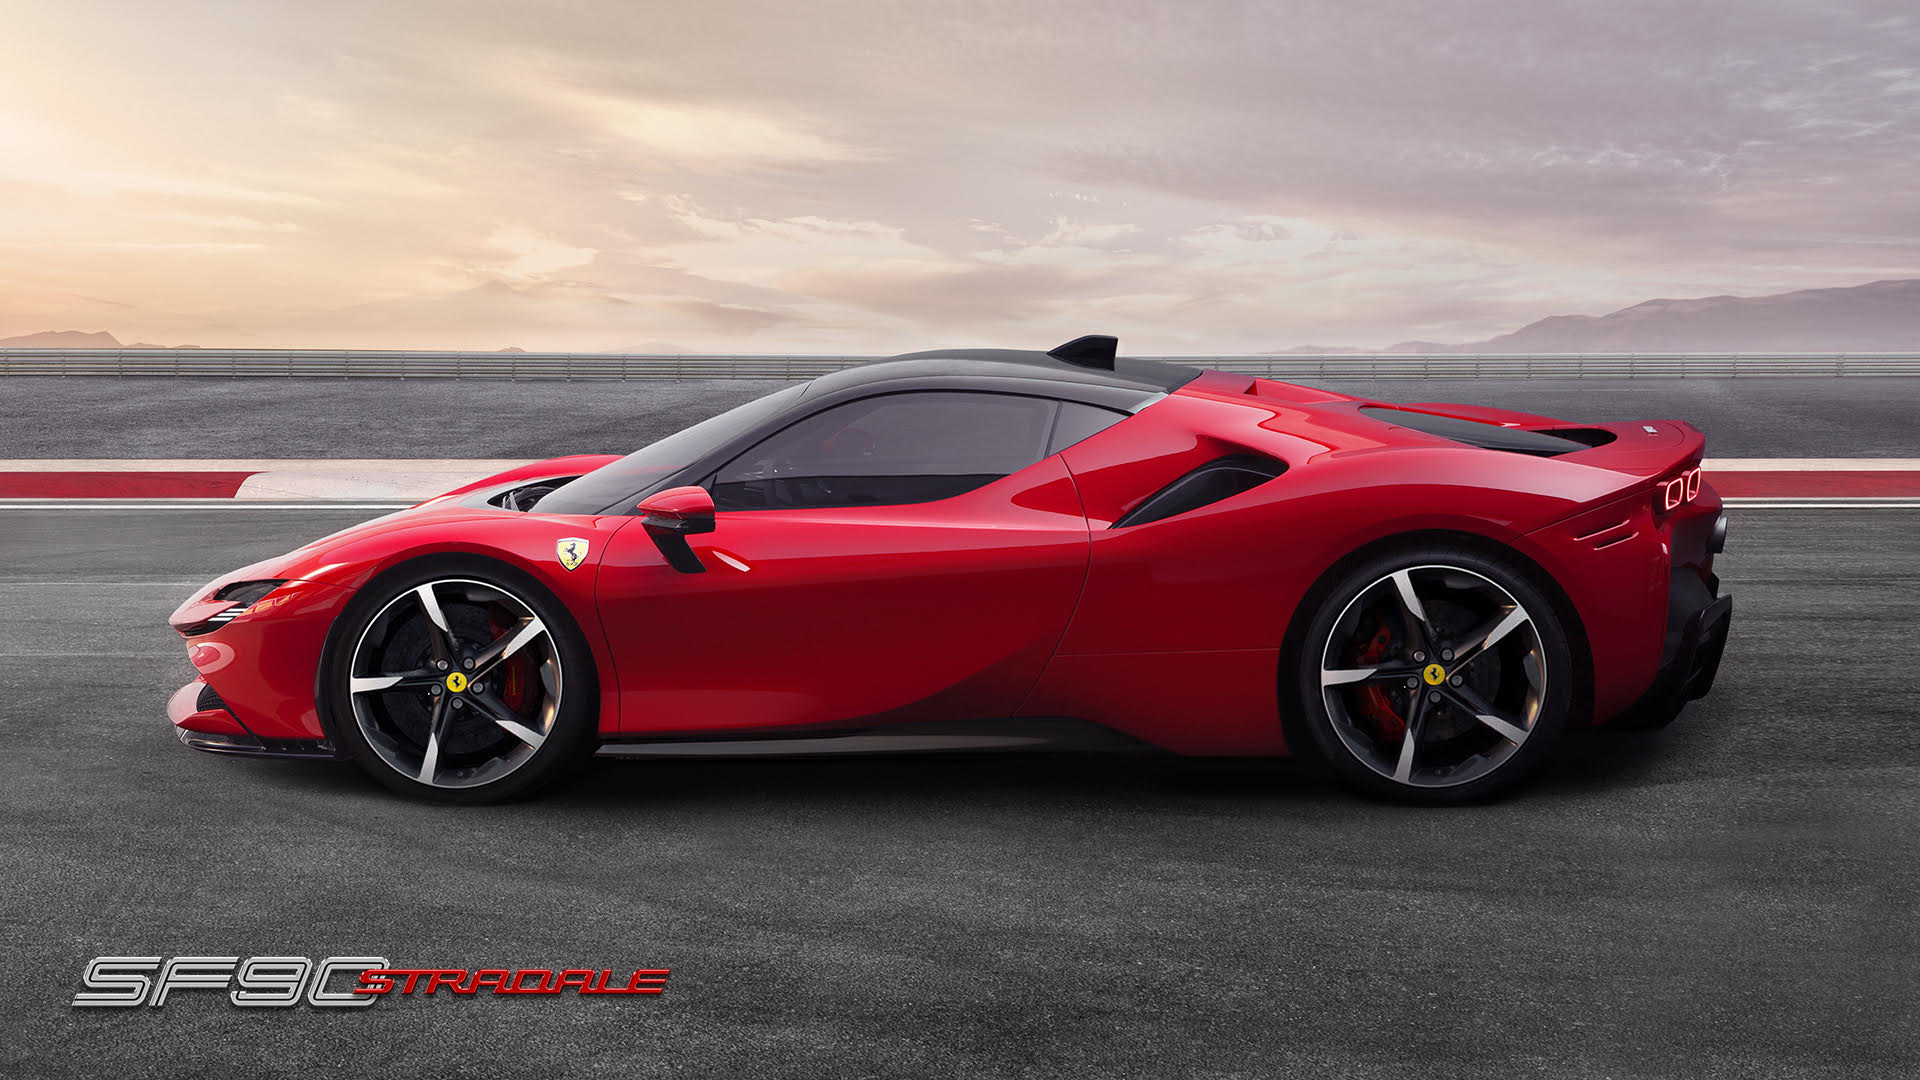 Ferrari's fastest production car is an electric hybrid